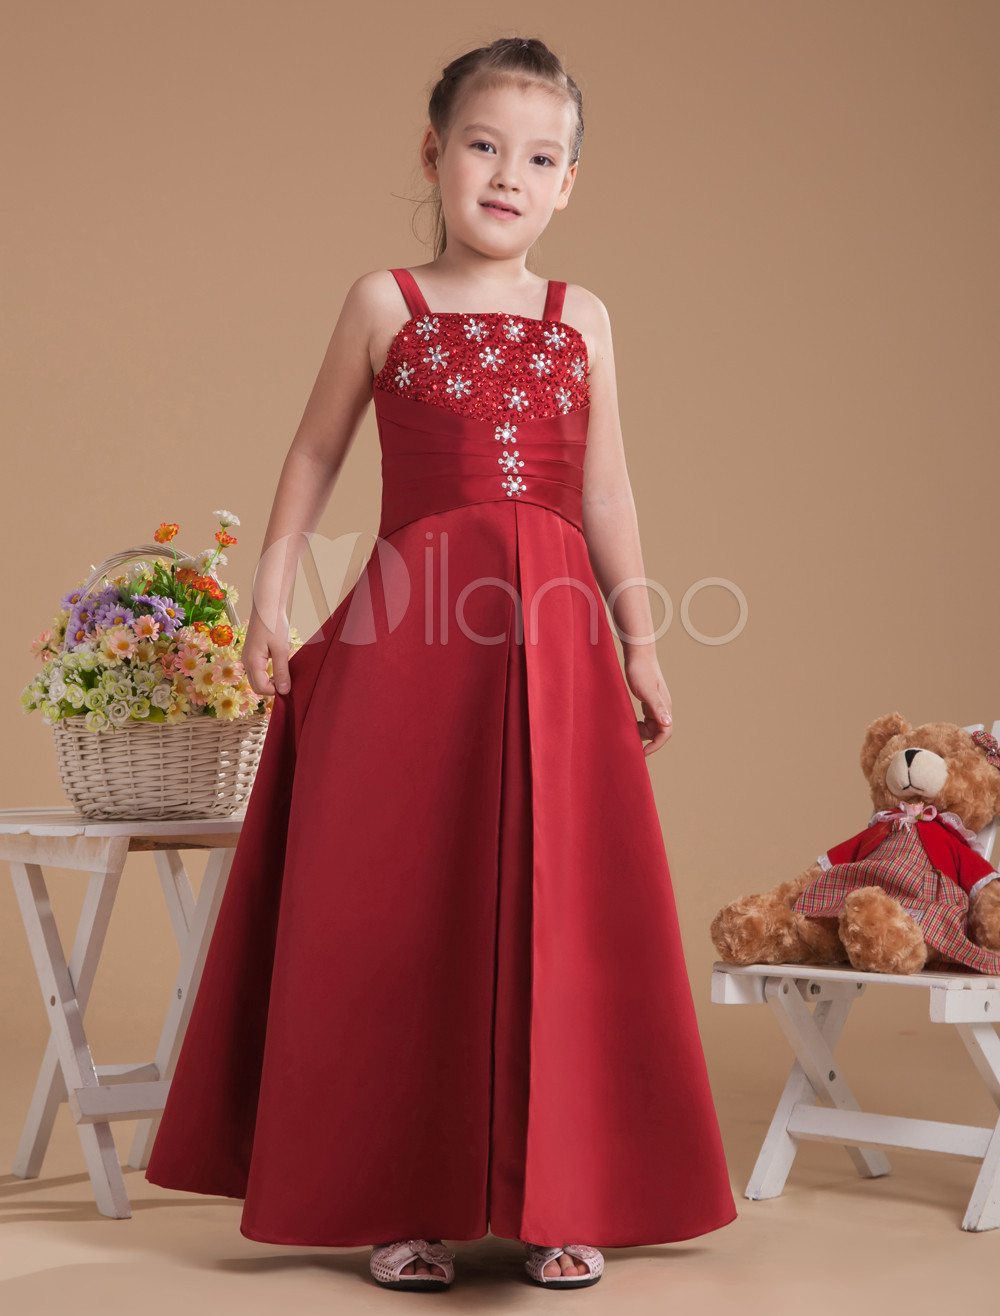 Amazing Red Satin Thin Shoulder Straps Floor Length Junior Bridesmaid Dress